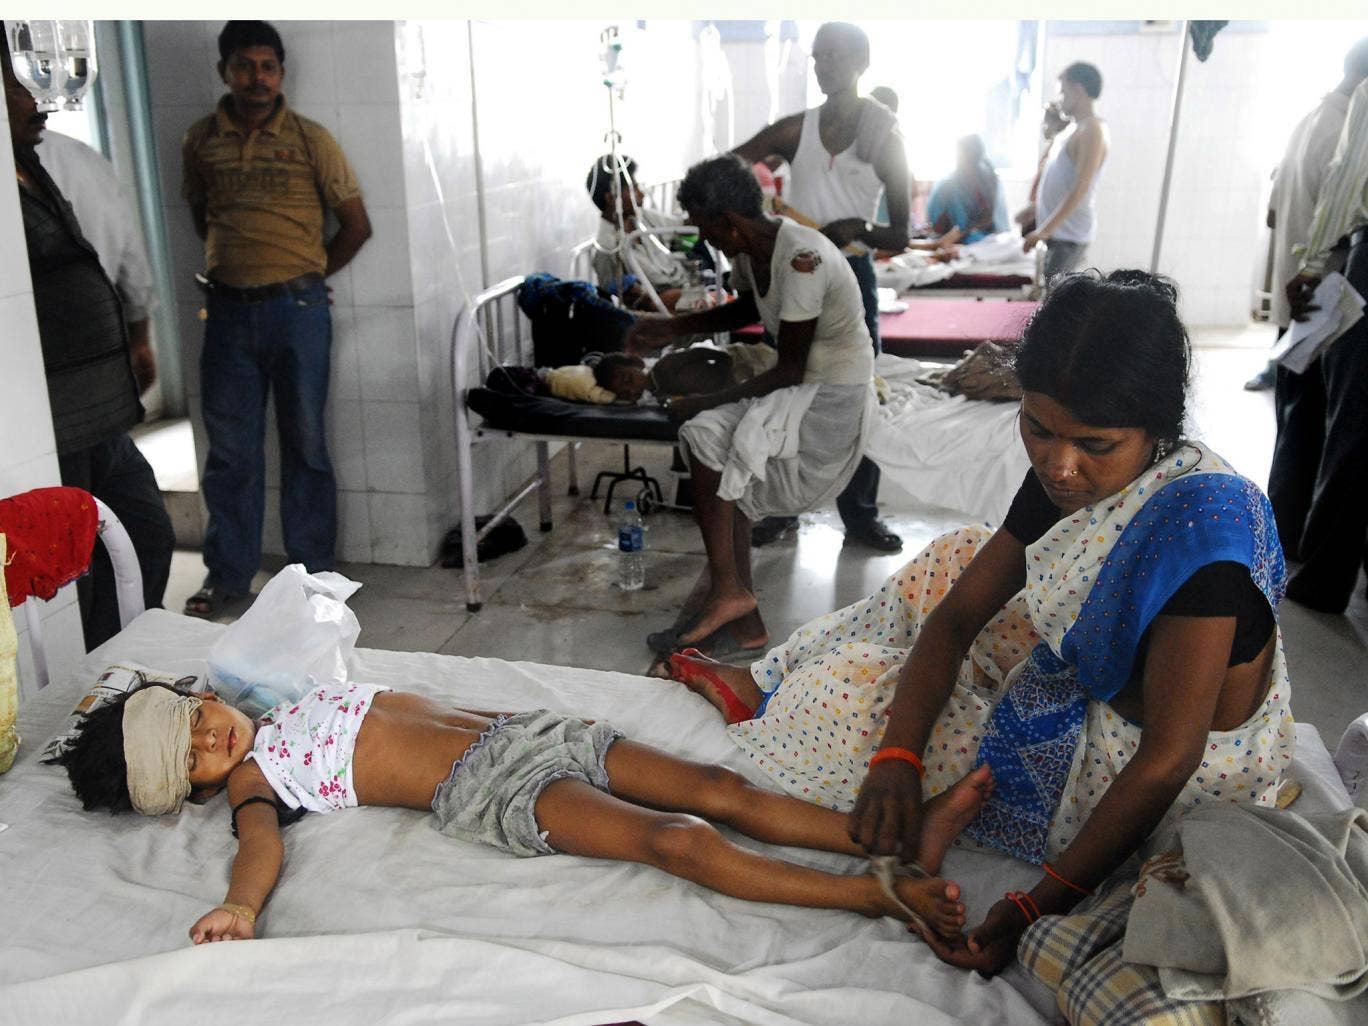 An Indian woman attends to a child lying in a bed in hospital. Health officials are battling to confront a new outbreak of encephalitis, a disease that has this year killed at least 350 children in one state alone